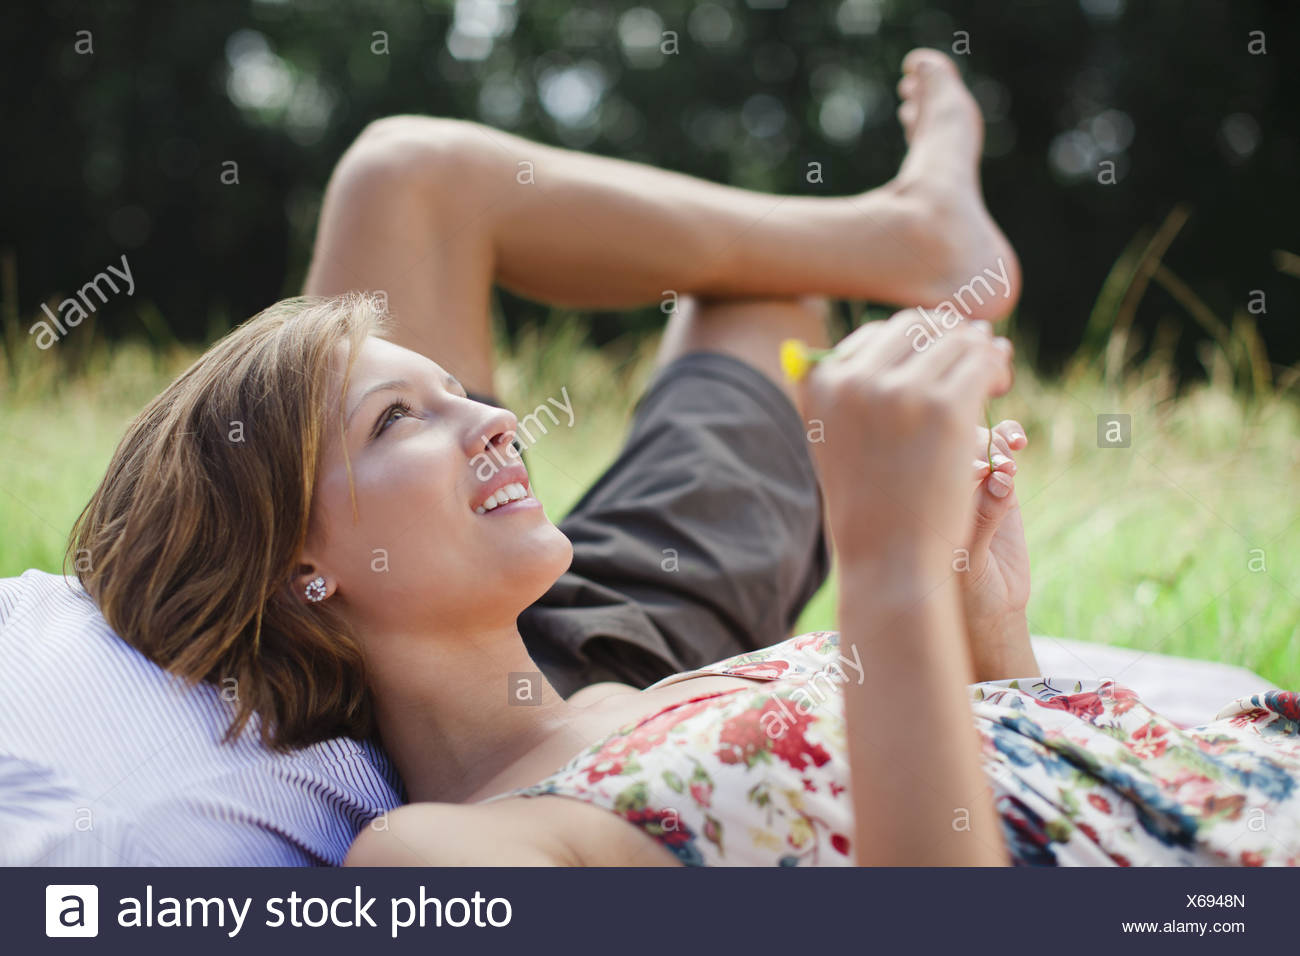 Couple laying in field together - Stock Image